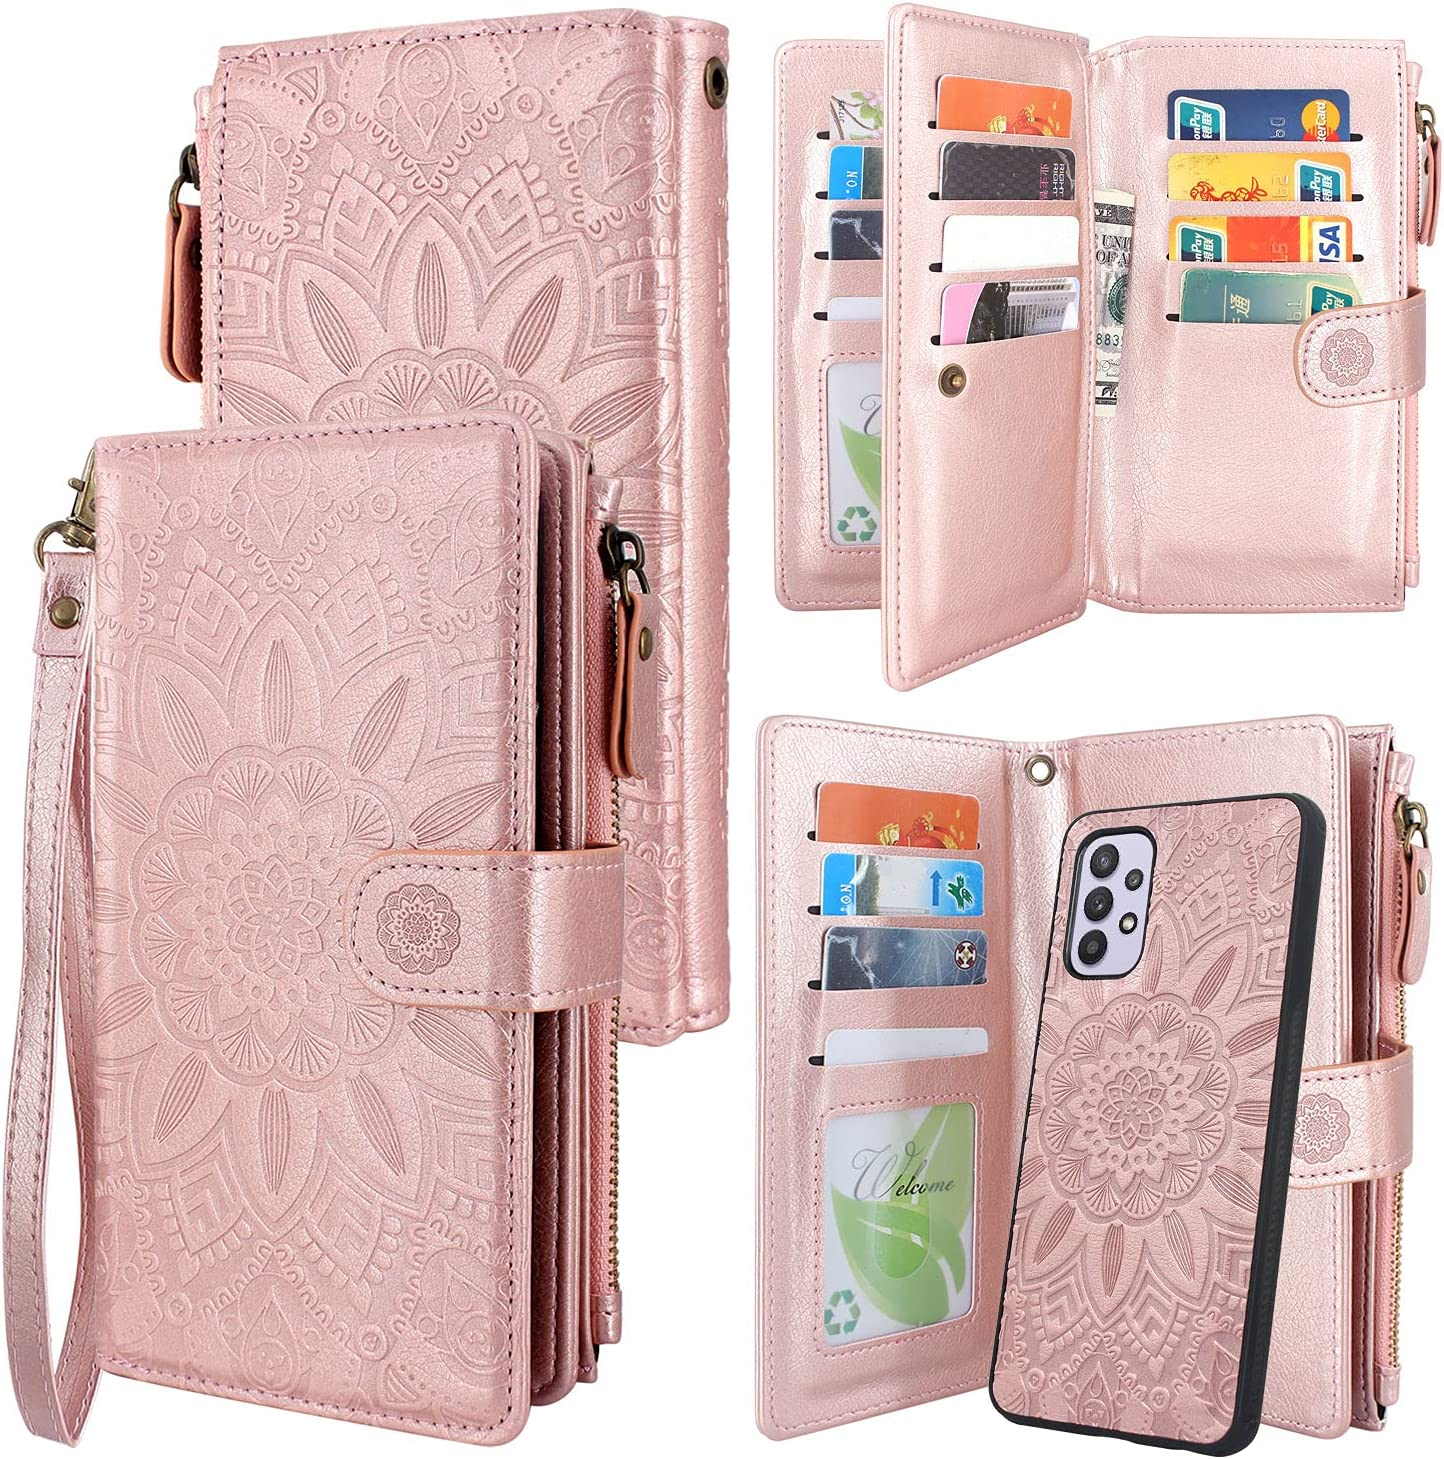 Harryshell Detachable Magnetic Zipper Wallet Leather Case with Cash Coin Pocket 12 Card Slots Holder Wrist Strap Lanyard for Samsung Galaxy A32 5G (2021) Flower (Rose Gold)